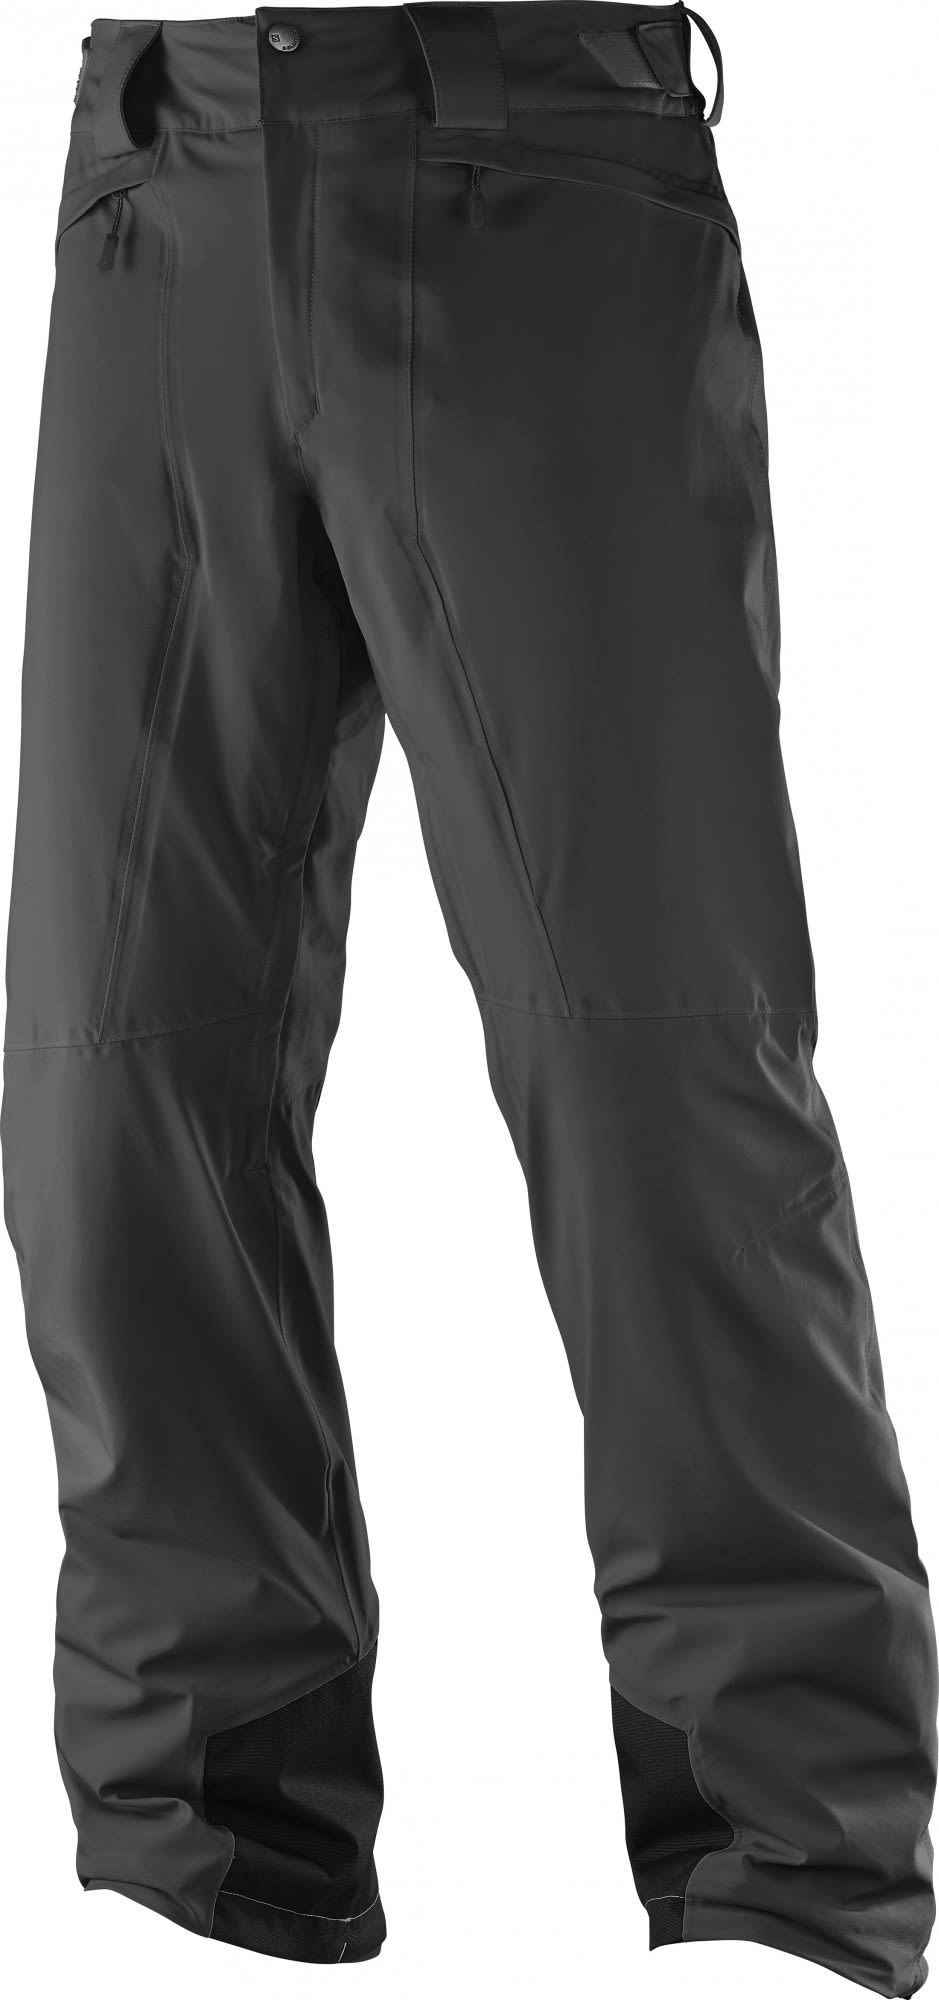 Salomon Icemania Pant (Modell Winter 2017) Schwarz, Male Hose, S/S